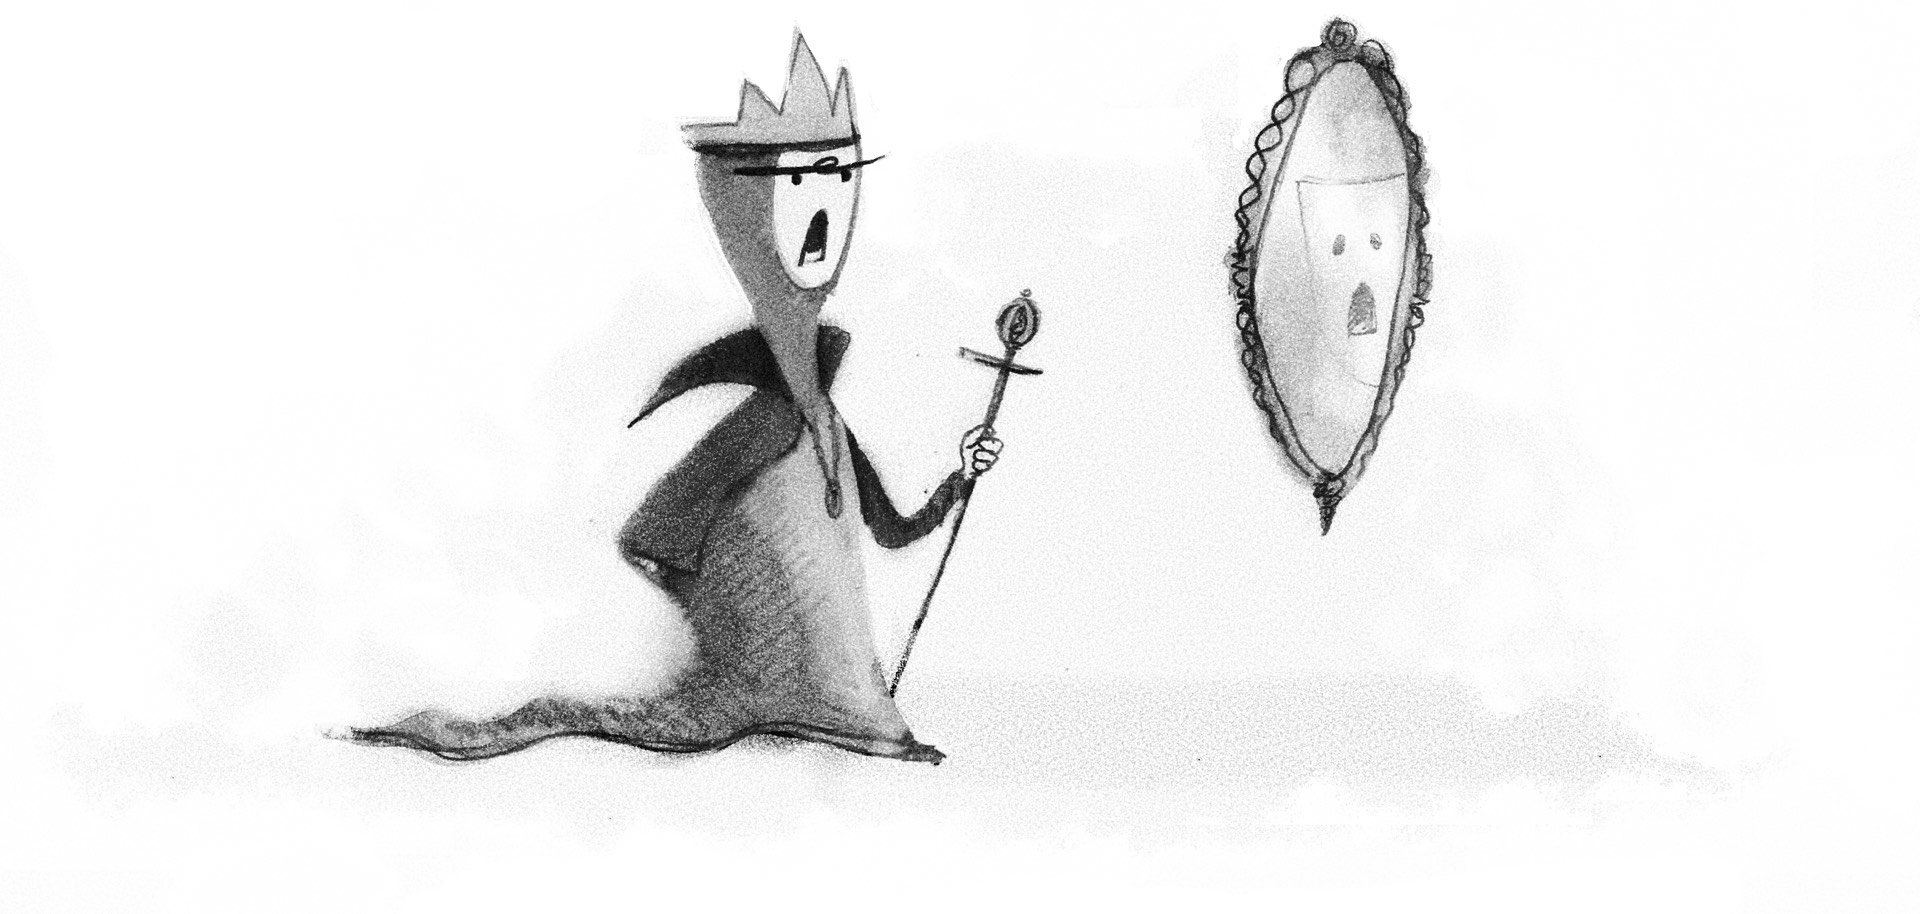 Illustration: The evil queen consults her magic mirror, who gives answers just for her.